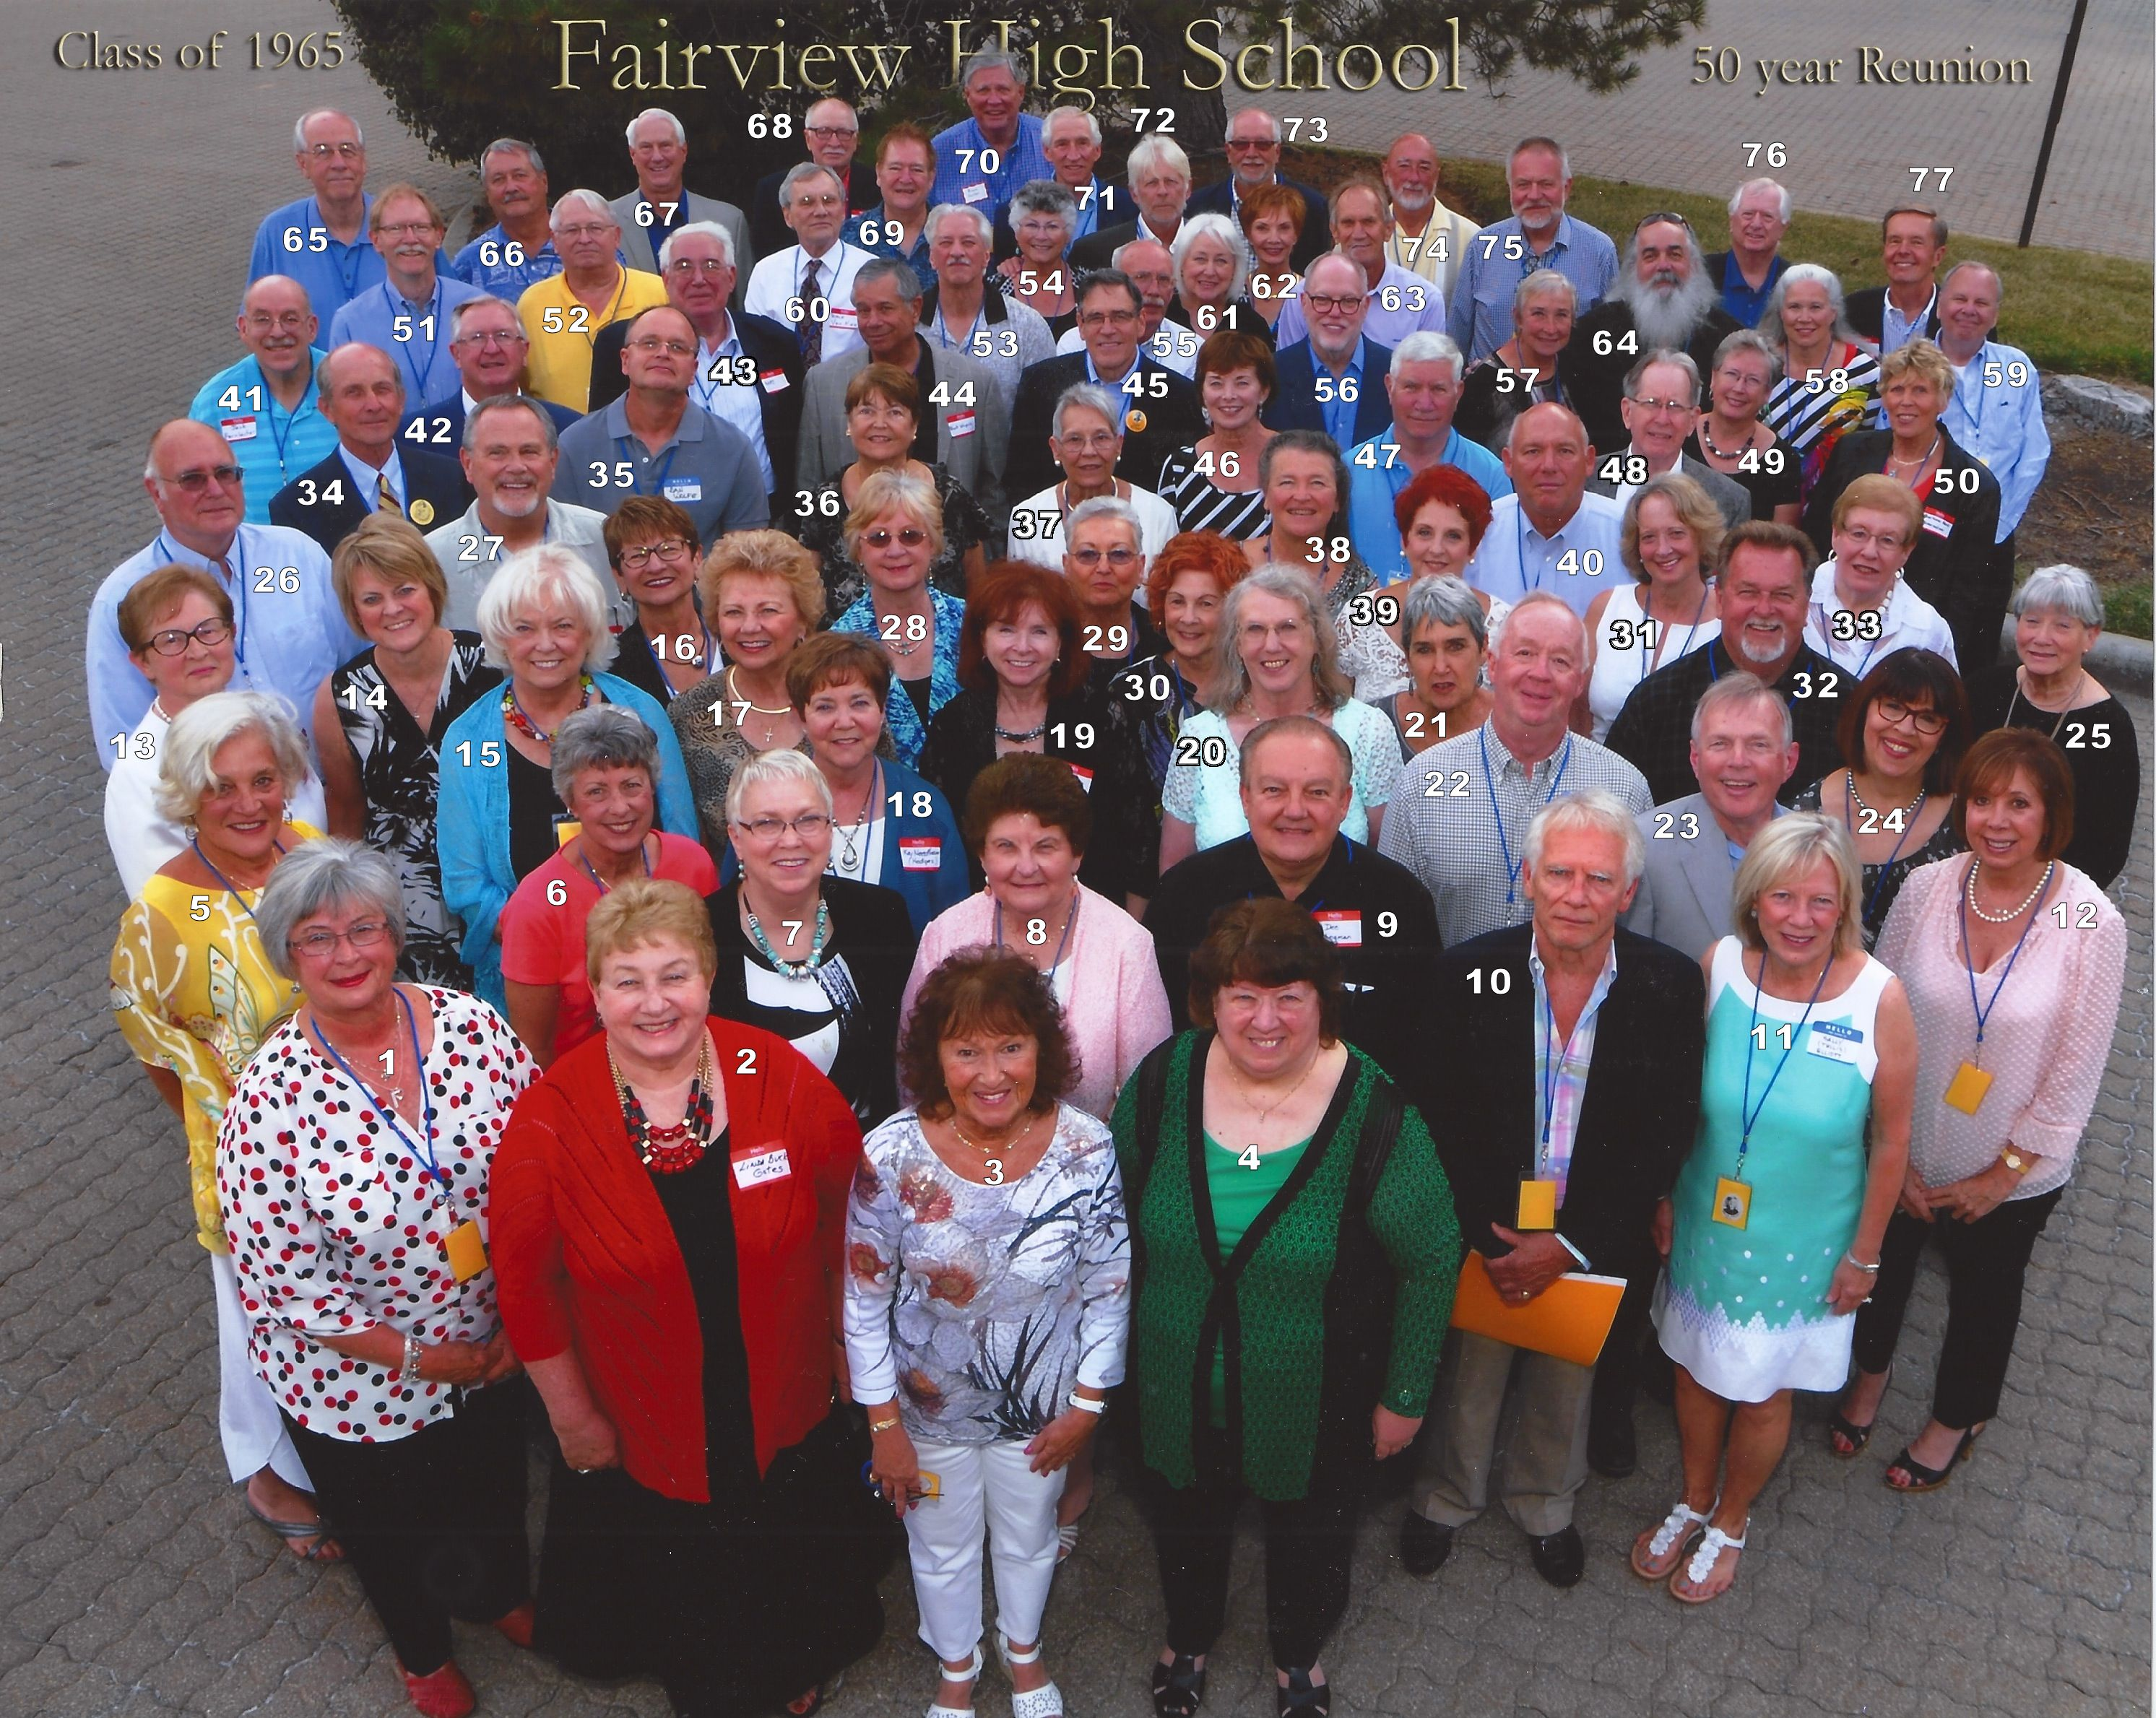 FHS-50th-reunion-photo-w_s